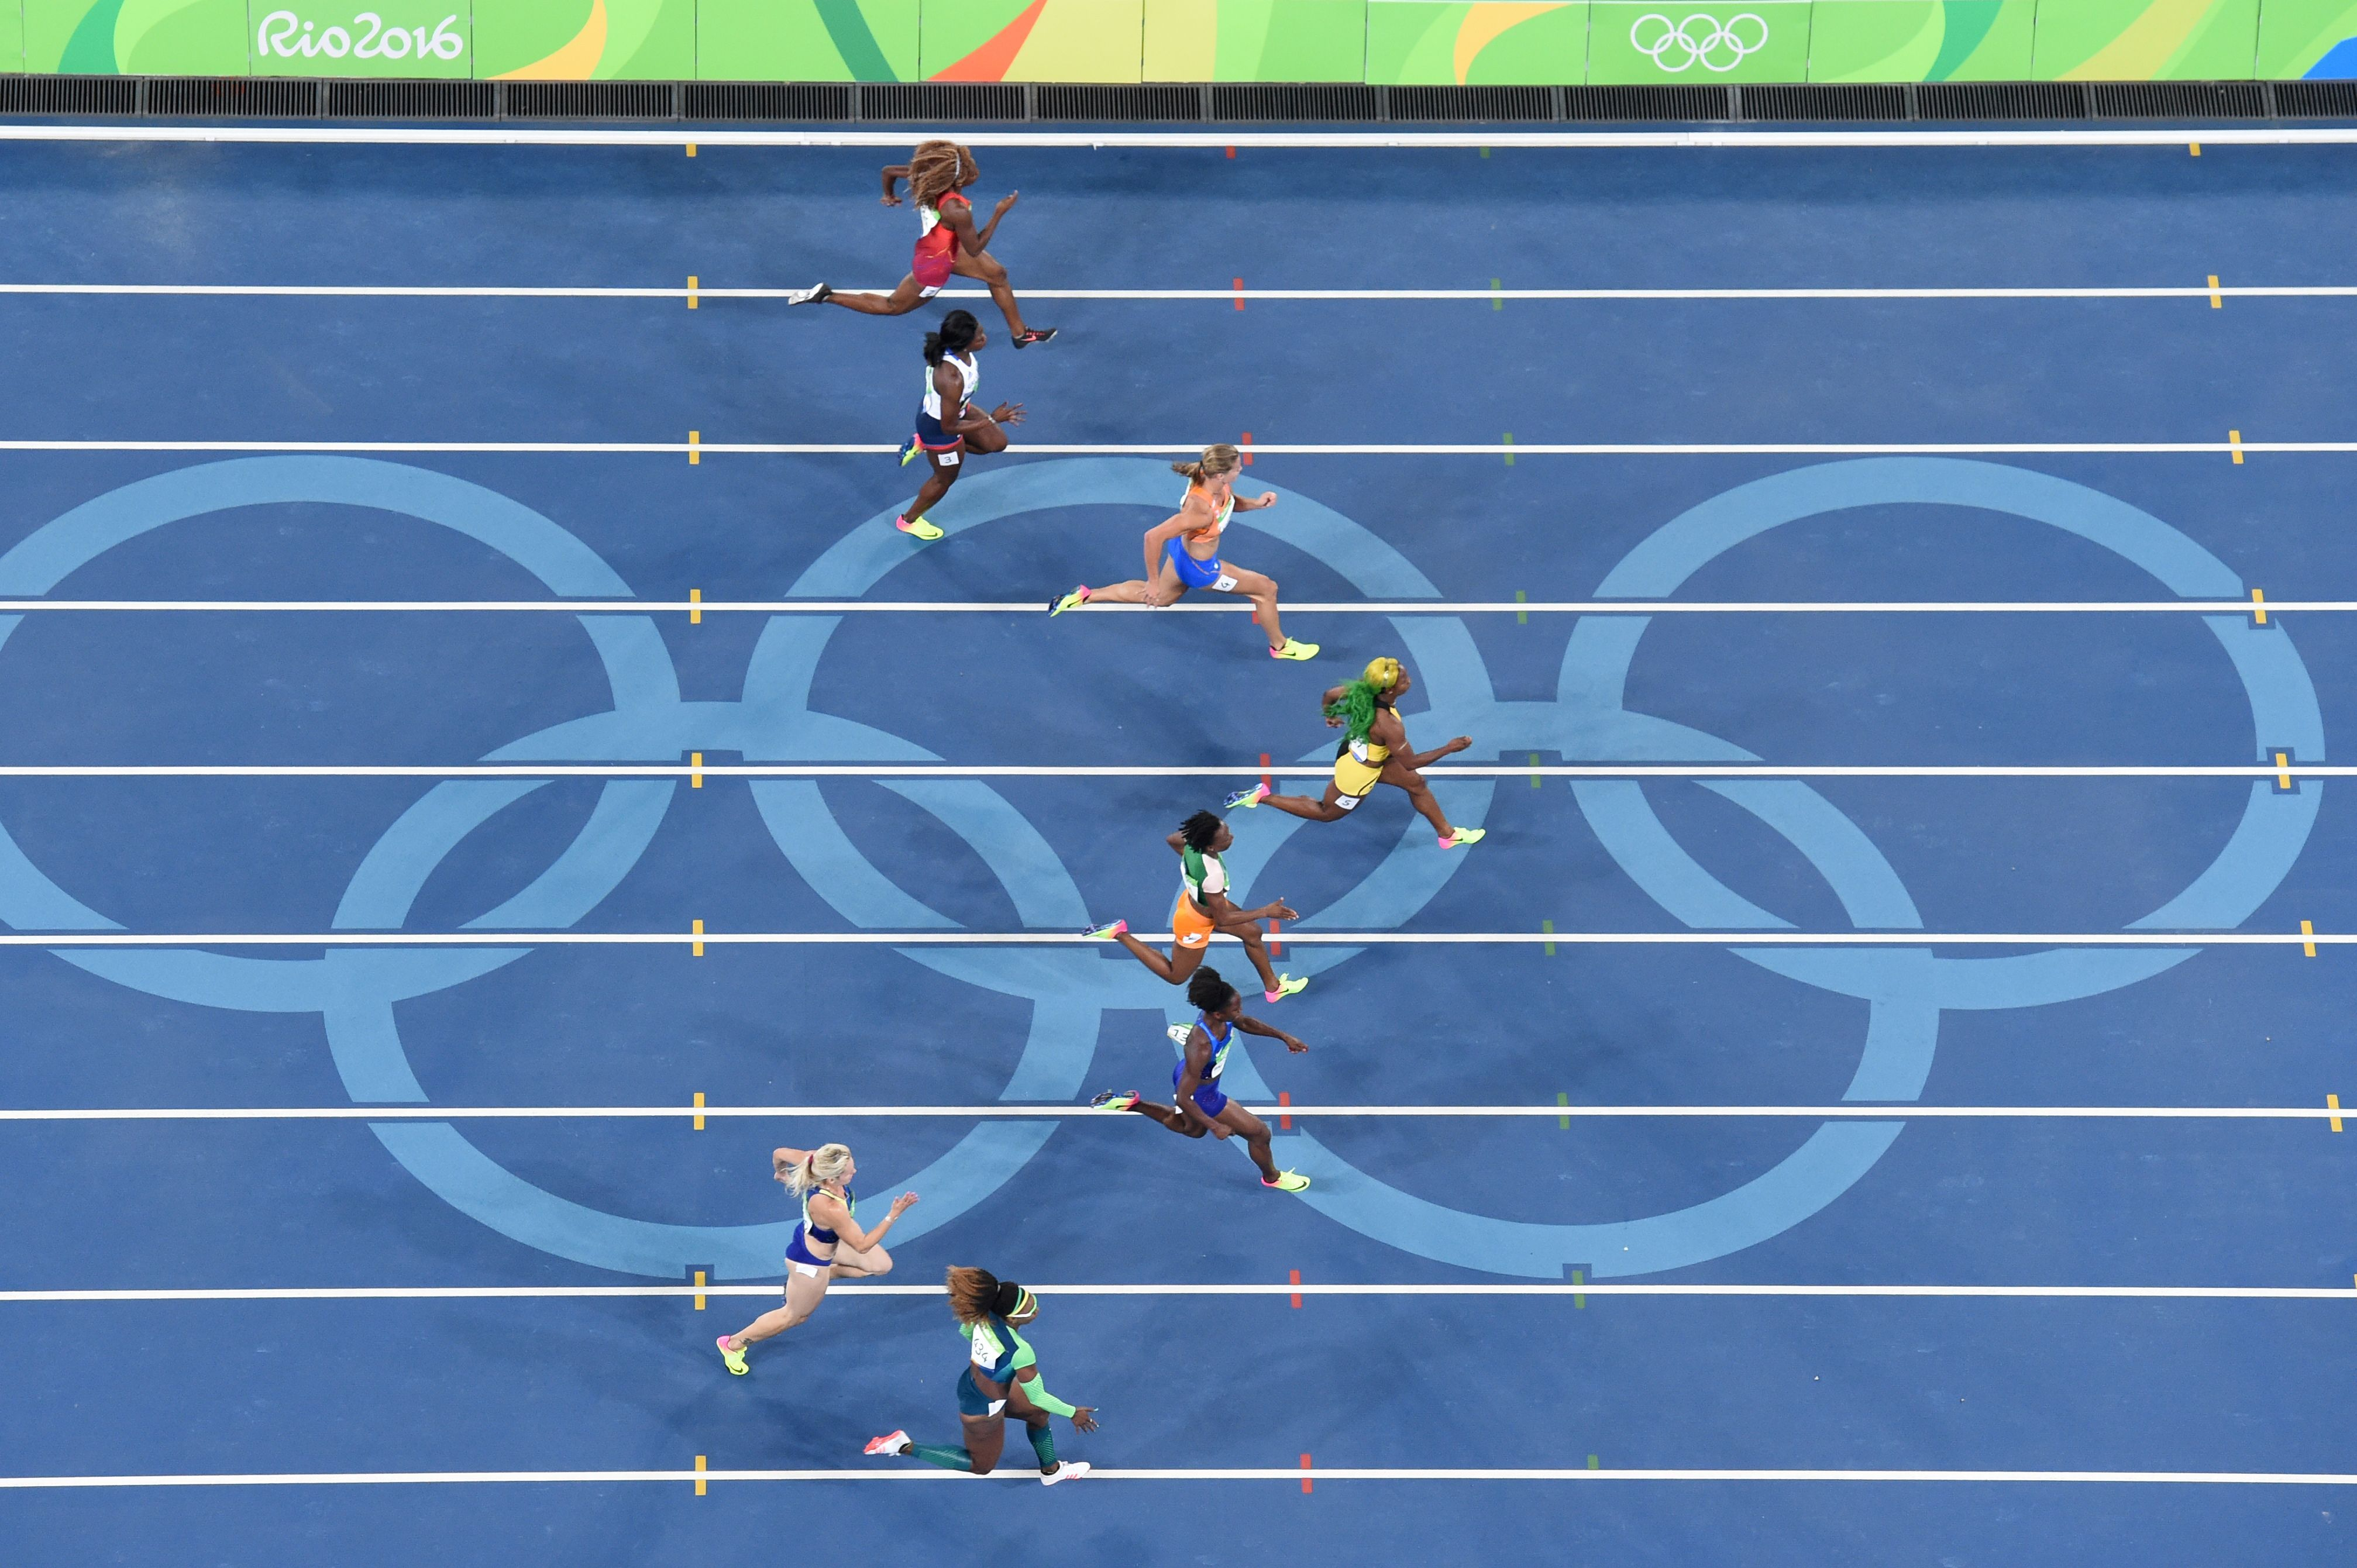 Artificial Intelligence Software Will Track Athletes' Speed at 2020 Tokyo Olympics